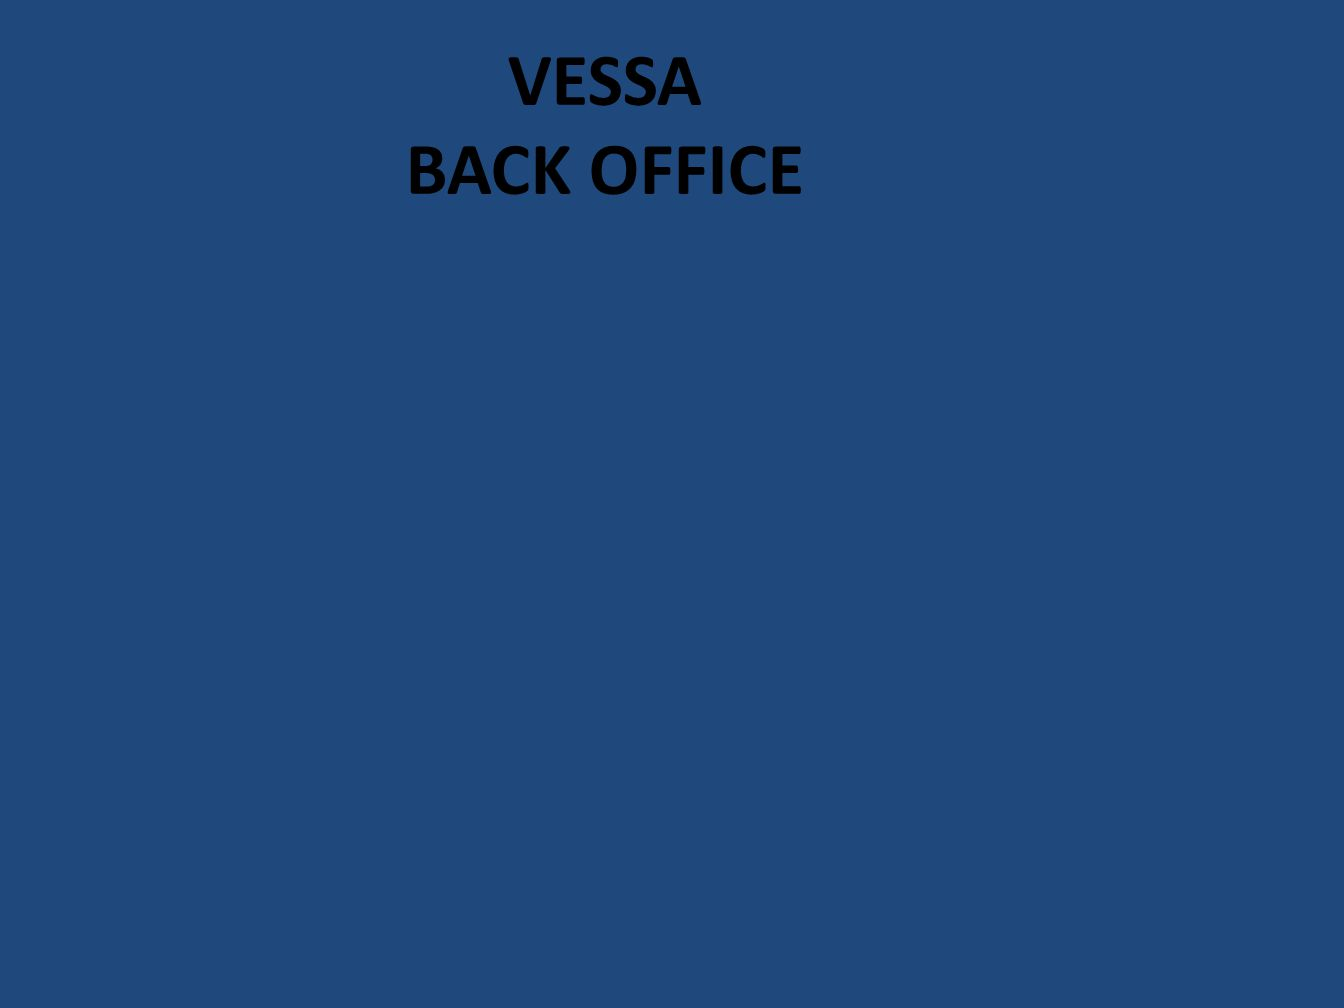 VESSA BACK OFFICE